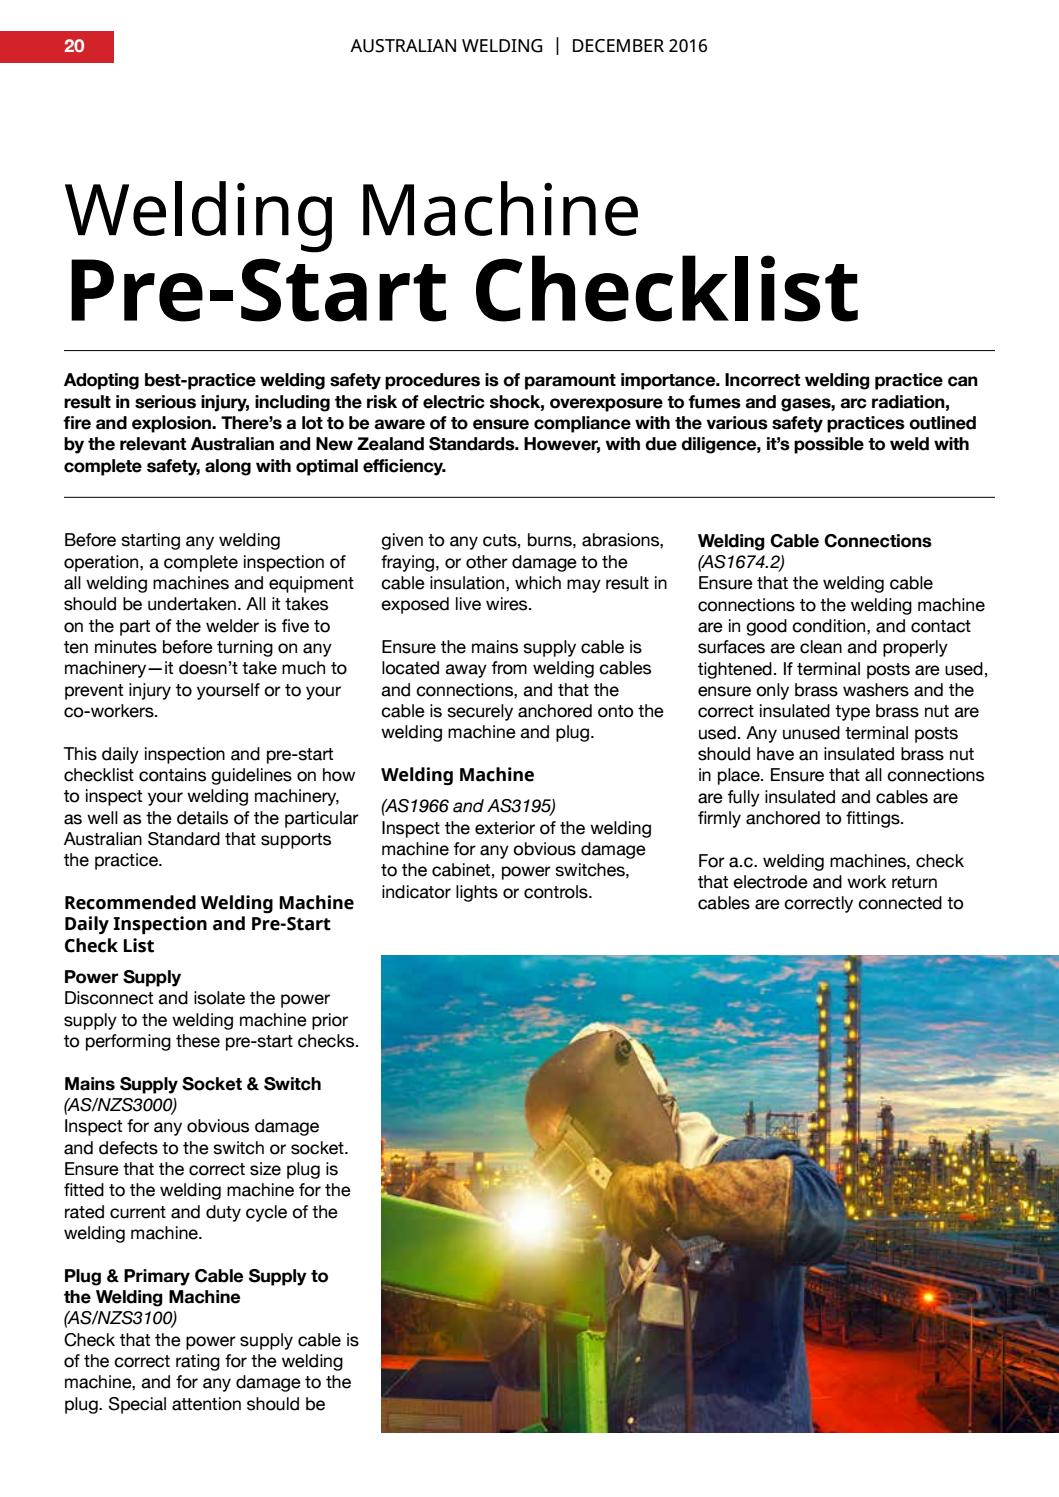 welding machine pre start checklist by weld australia